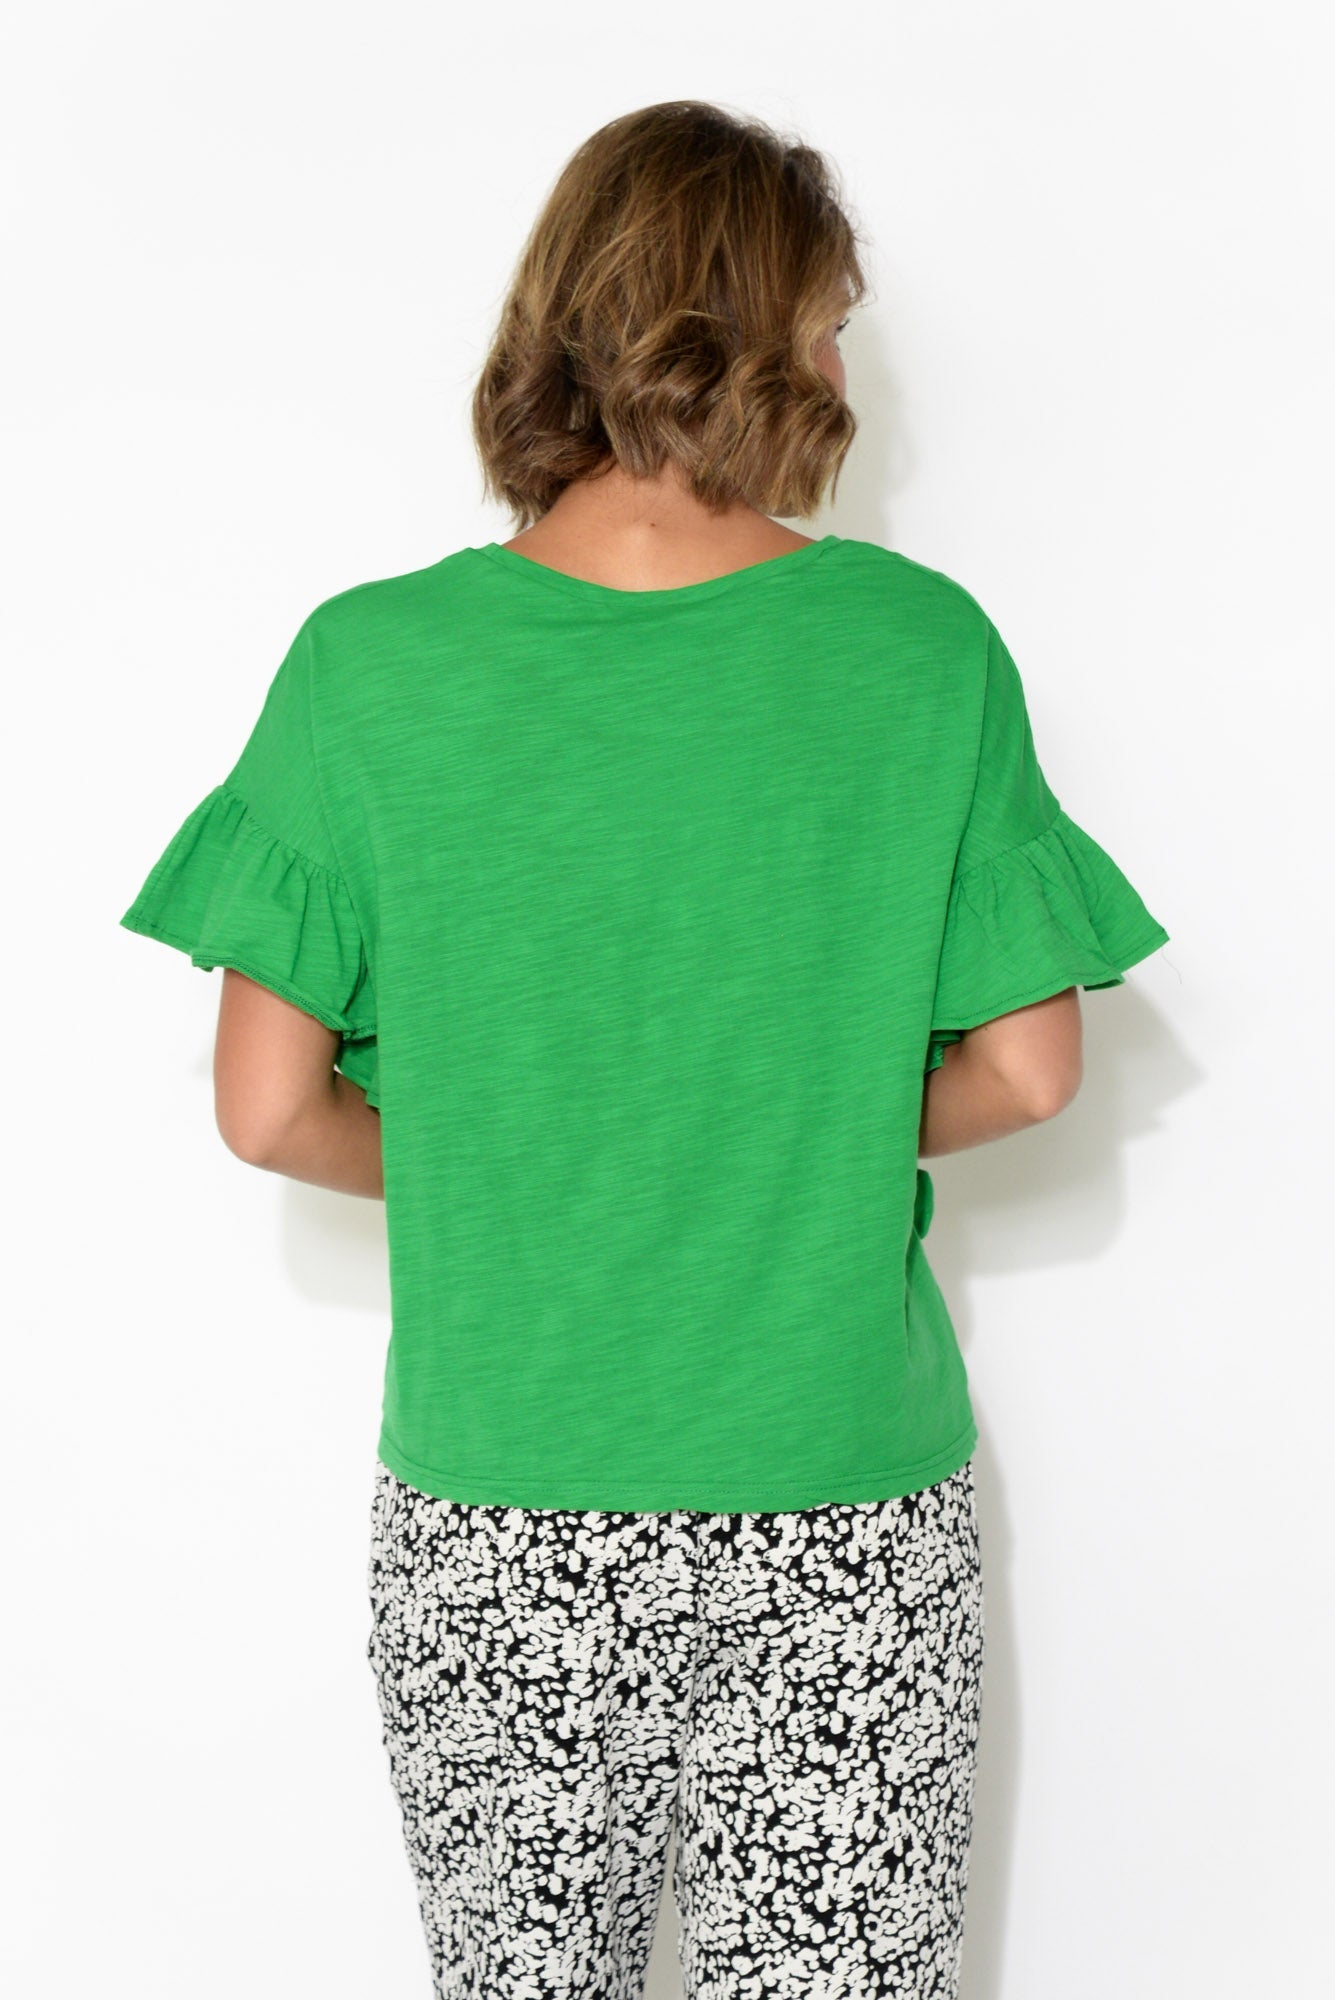 Cozumel Green Cotton Slub Ruffle Top